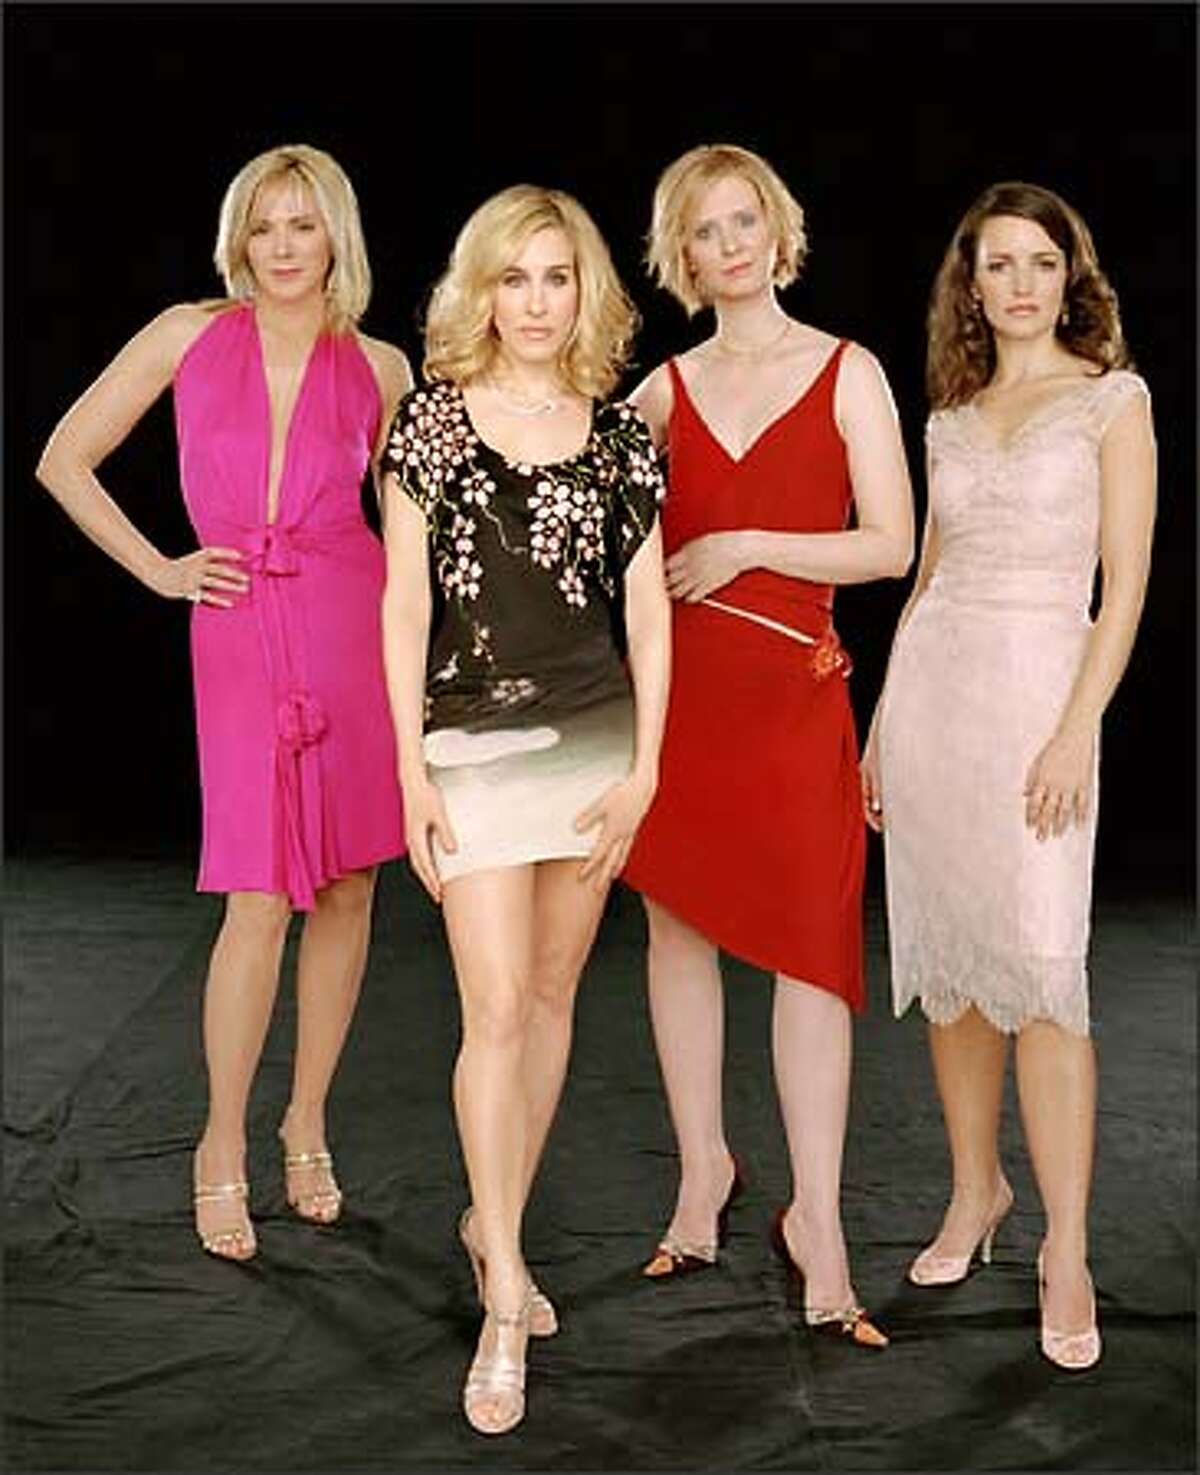 Samantha (Kim Cattrall), Carrie (Sarah Jessica Parker), Miranda (Cynthia Nixon) and Charlotte (Kristin Davis) are back for one more go-round as